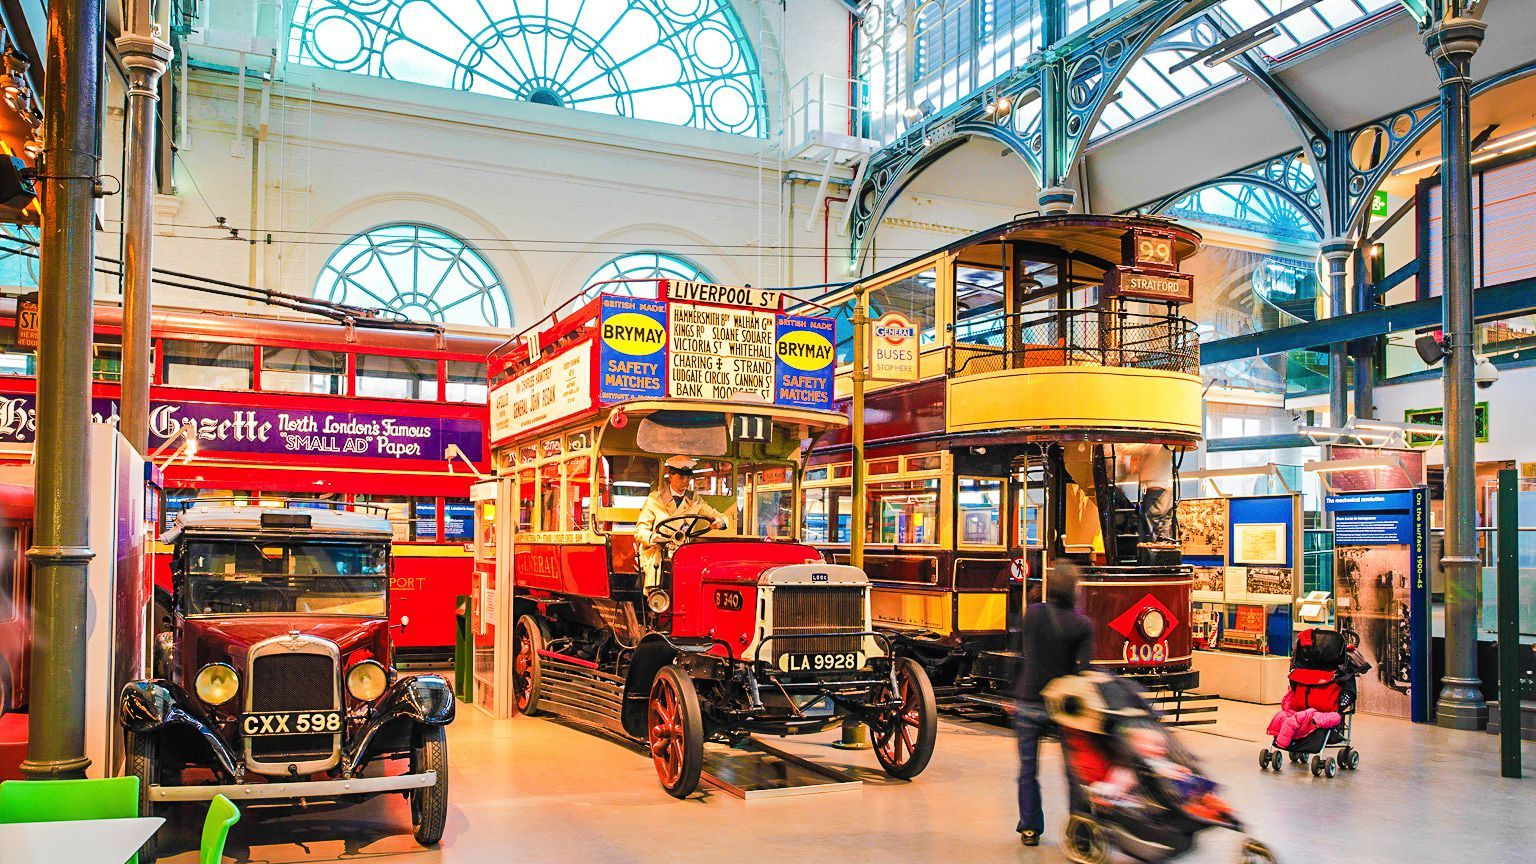 London's Most Famous District: Covent Garden - What To See, Eat & Do! - Hand Luggage Only - Travel, Food & Photography Blog